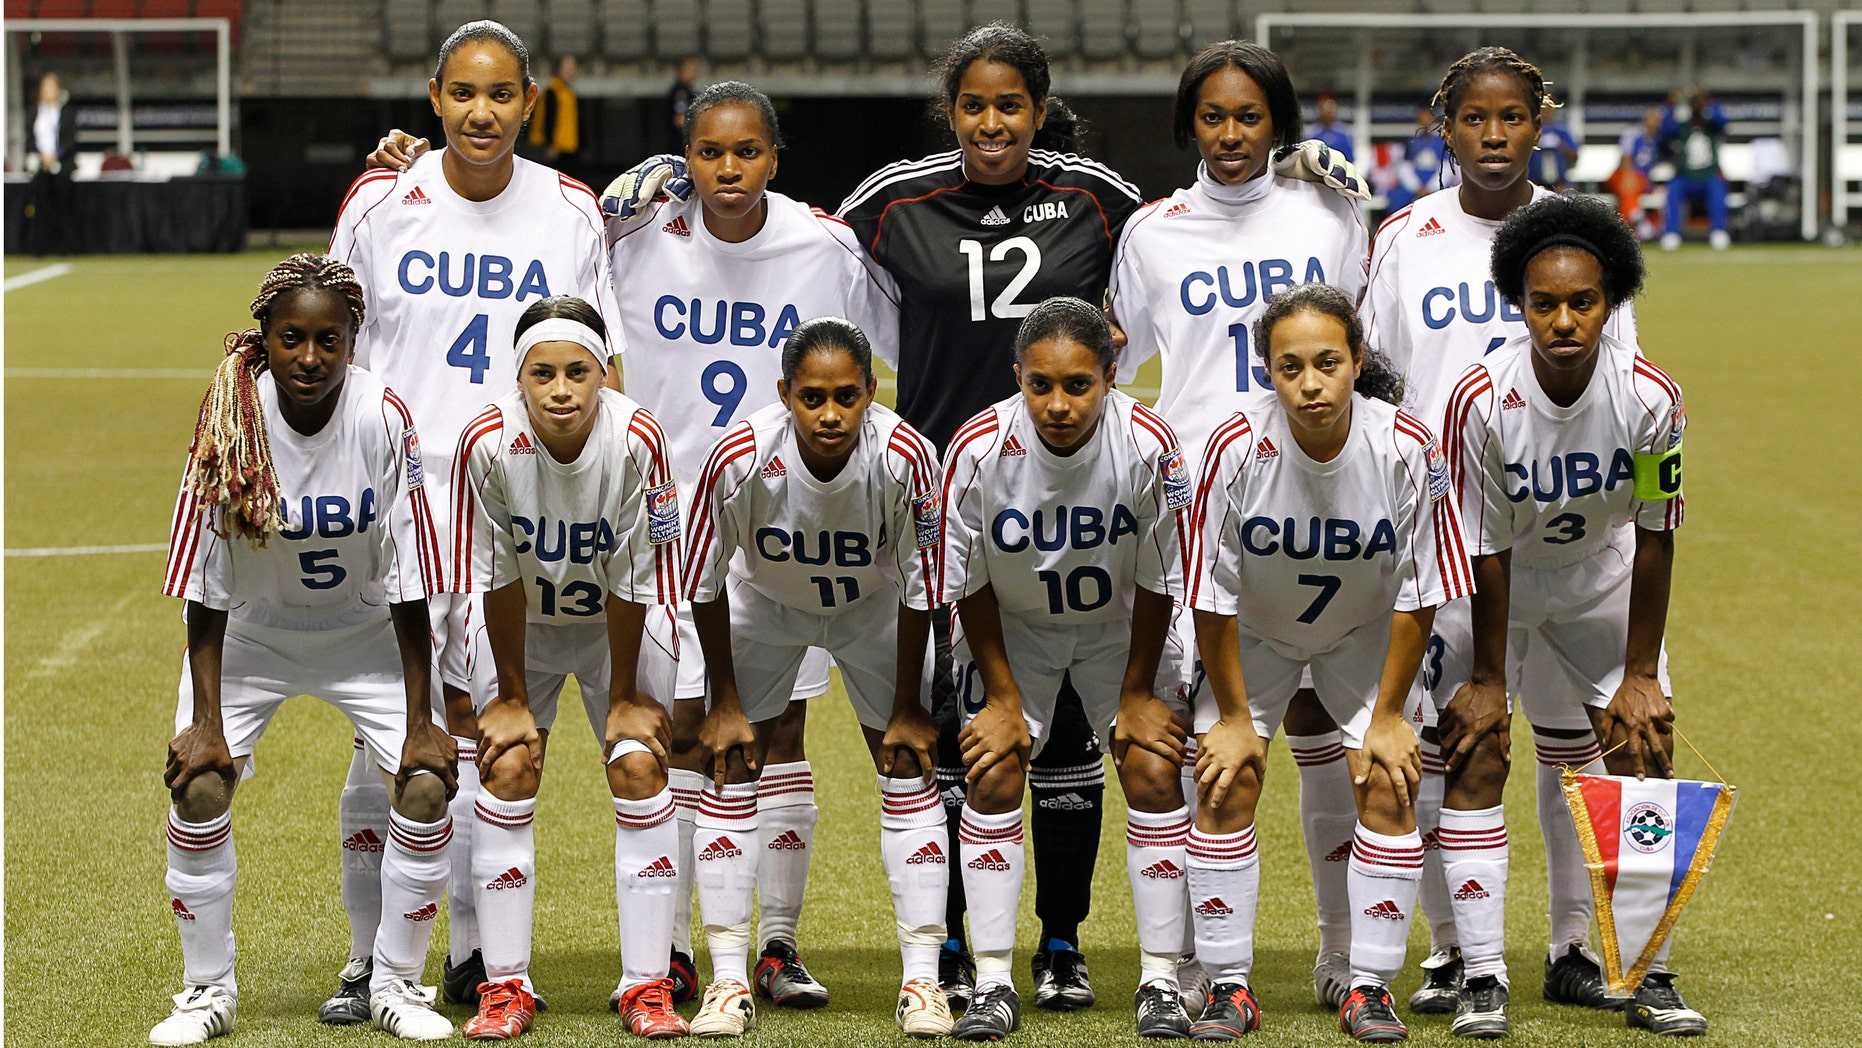 VANCOUVER, CANADA - JANUARY 23:  The starting 11 for  Cuba against Haiti during the 2012 CONCACAF Women's Olympic Qualifying Tournament at BC Place on January 23, 2012 in Vancouver, British Columbia, Canada.  (Photo by Jeff Vinnick/Getty Images)